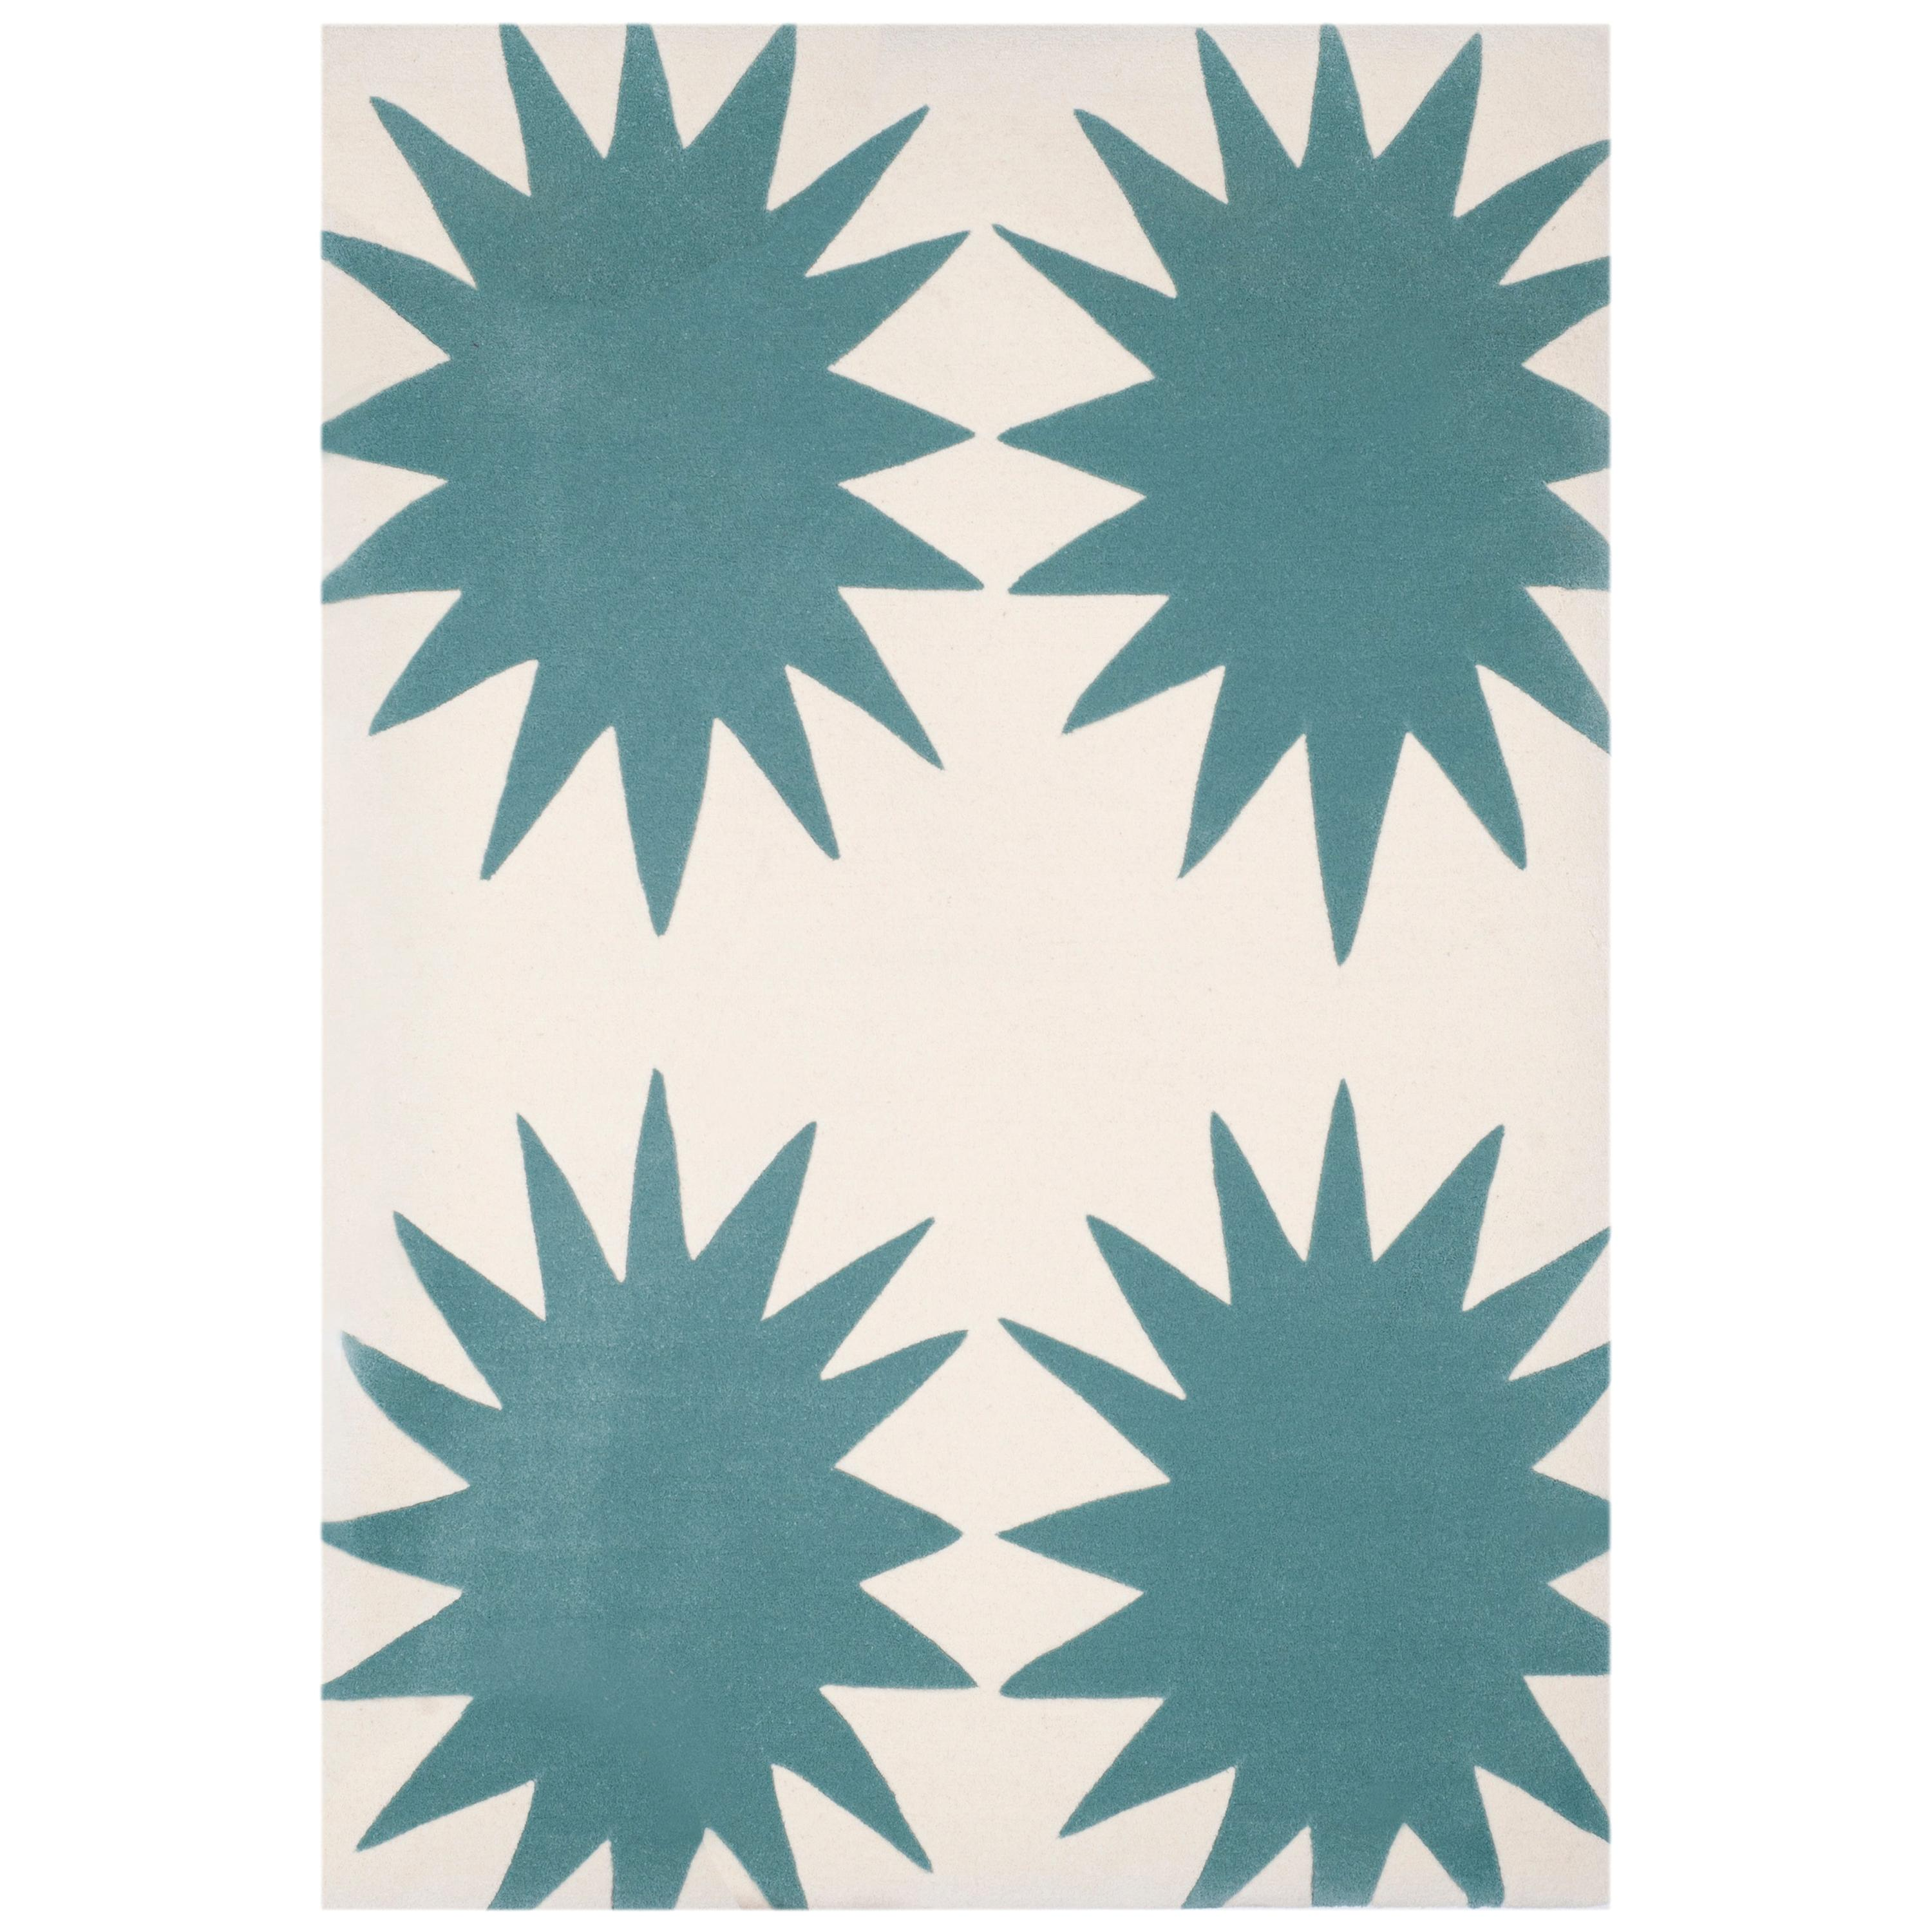 Kilombo Home 21st Century Handtufted Wool Rug Made in Spain Turquoise&White Star